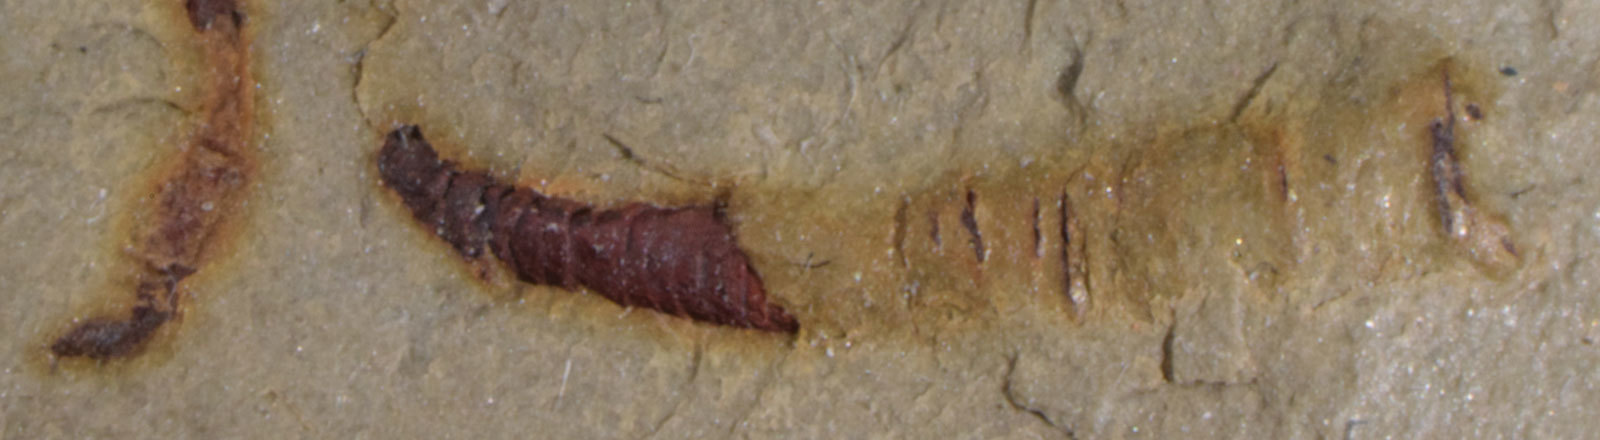 A fossilized cloudinomorph from the Montgomery Mountains near Pahrump, Nevada. This is representative of the fossil that was analyzed in a study, done by the University of Missouri, published in 2020.